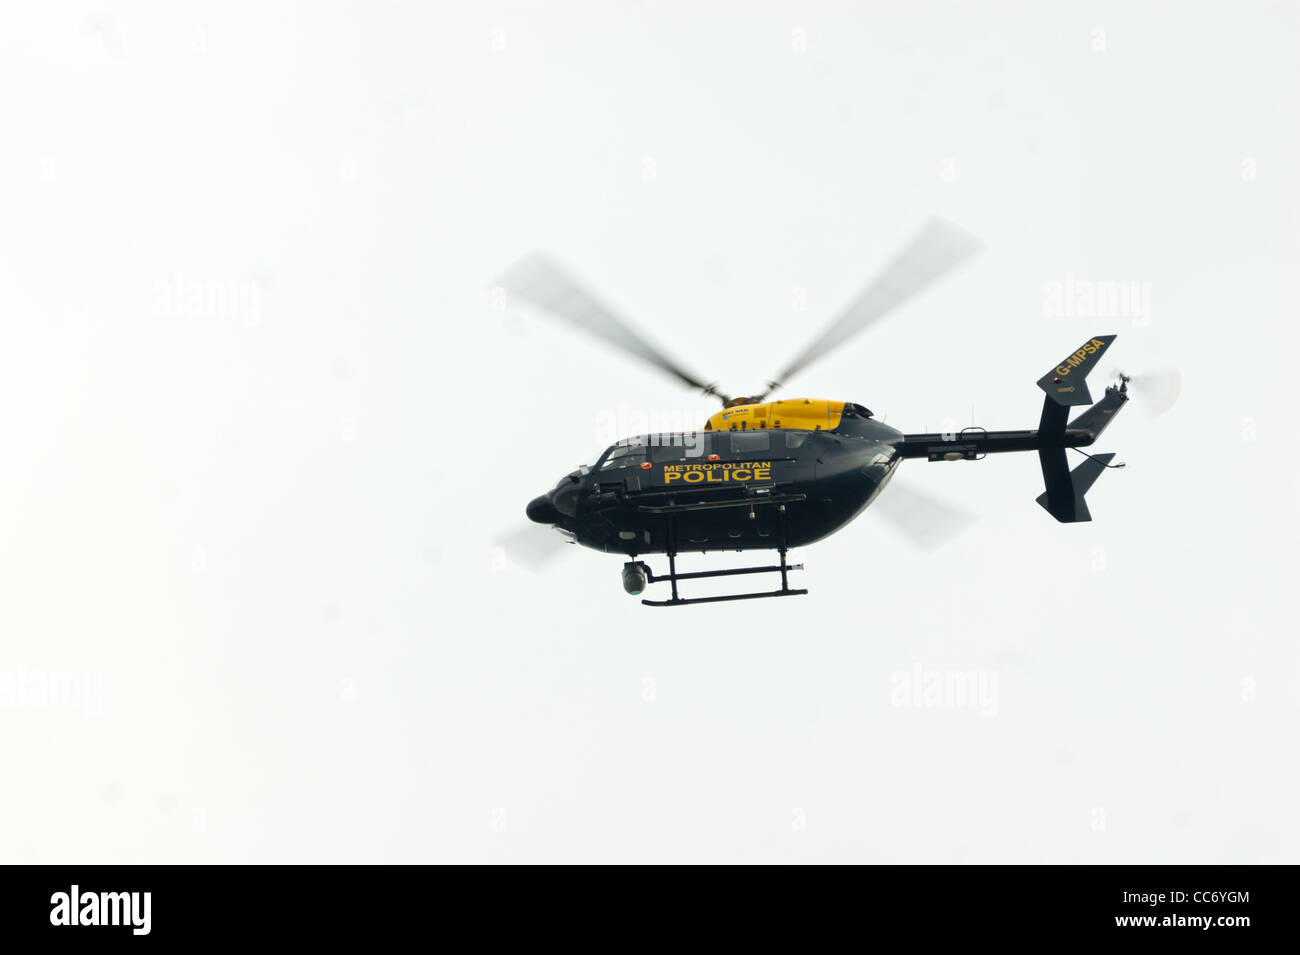 Metropolitan police helicopter flying low,  searching for  elusive quarry in North London, England UK  summer 2011. - Stock Image